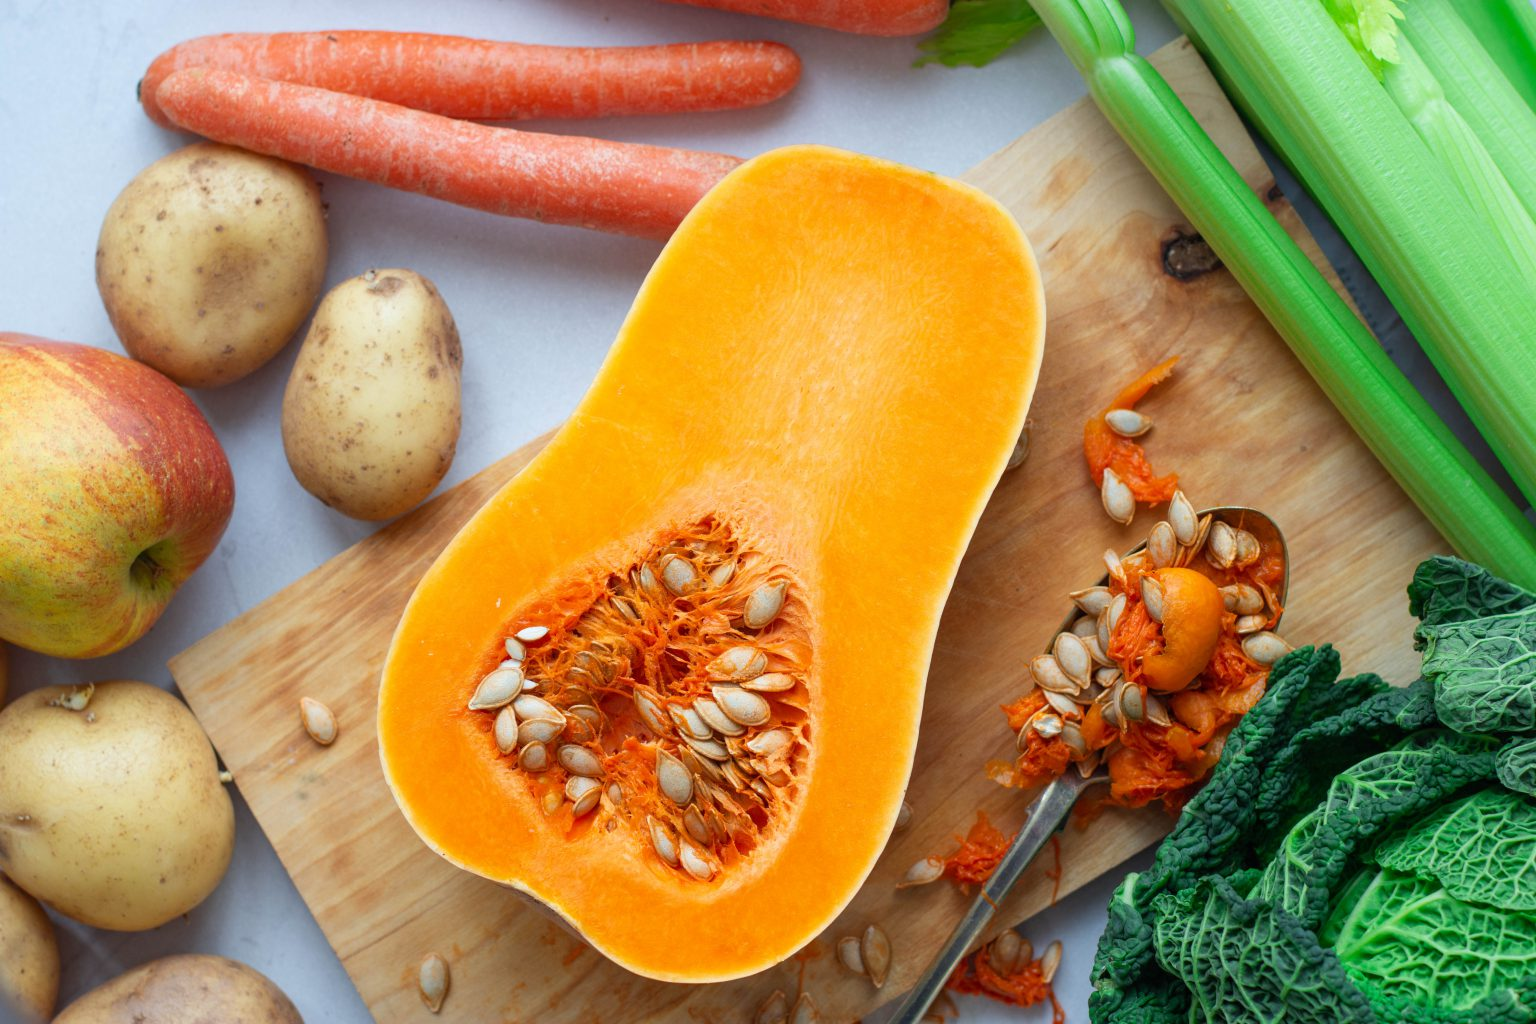 Butternut squash cut open with seed spilling out surrounded by apples, potatoes, carrots, celery & cabbage